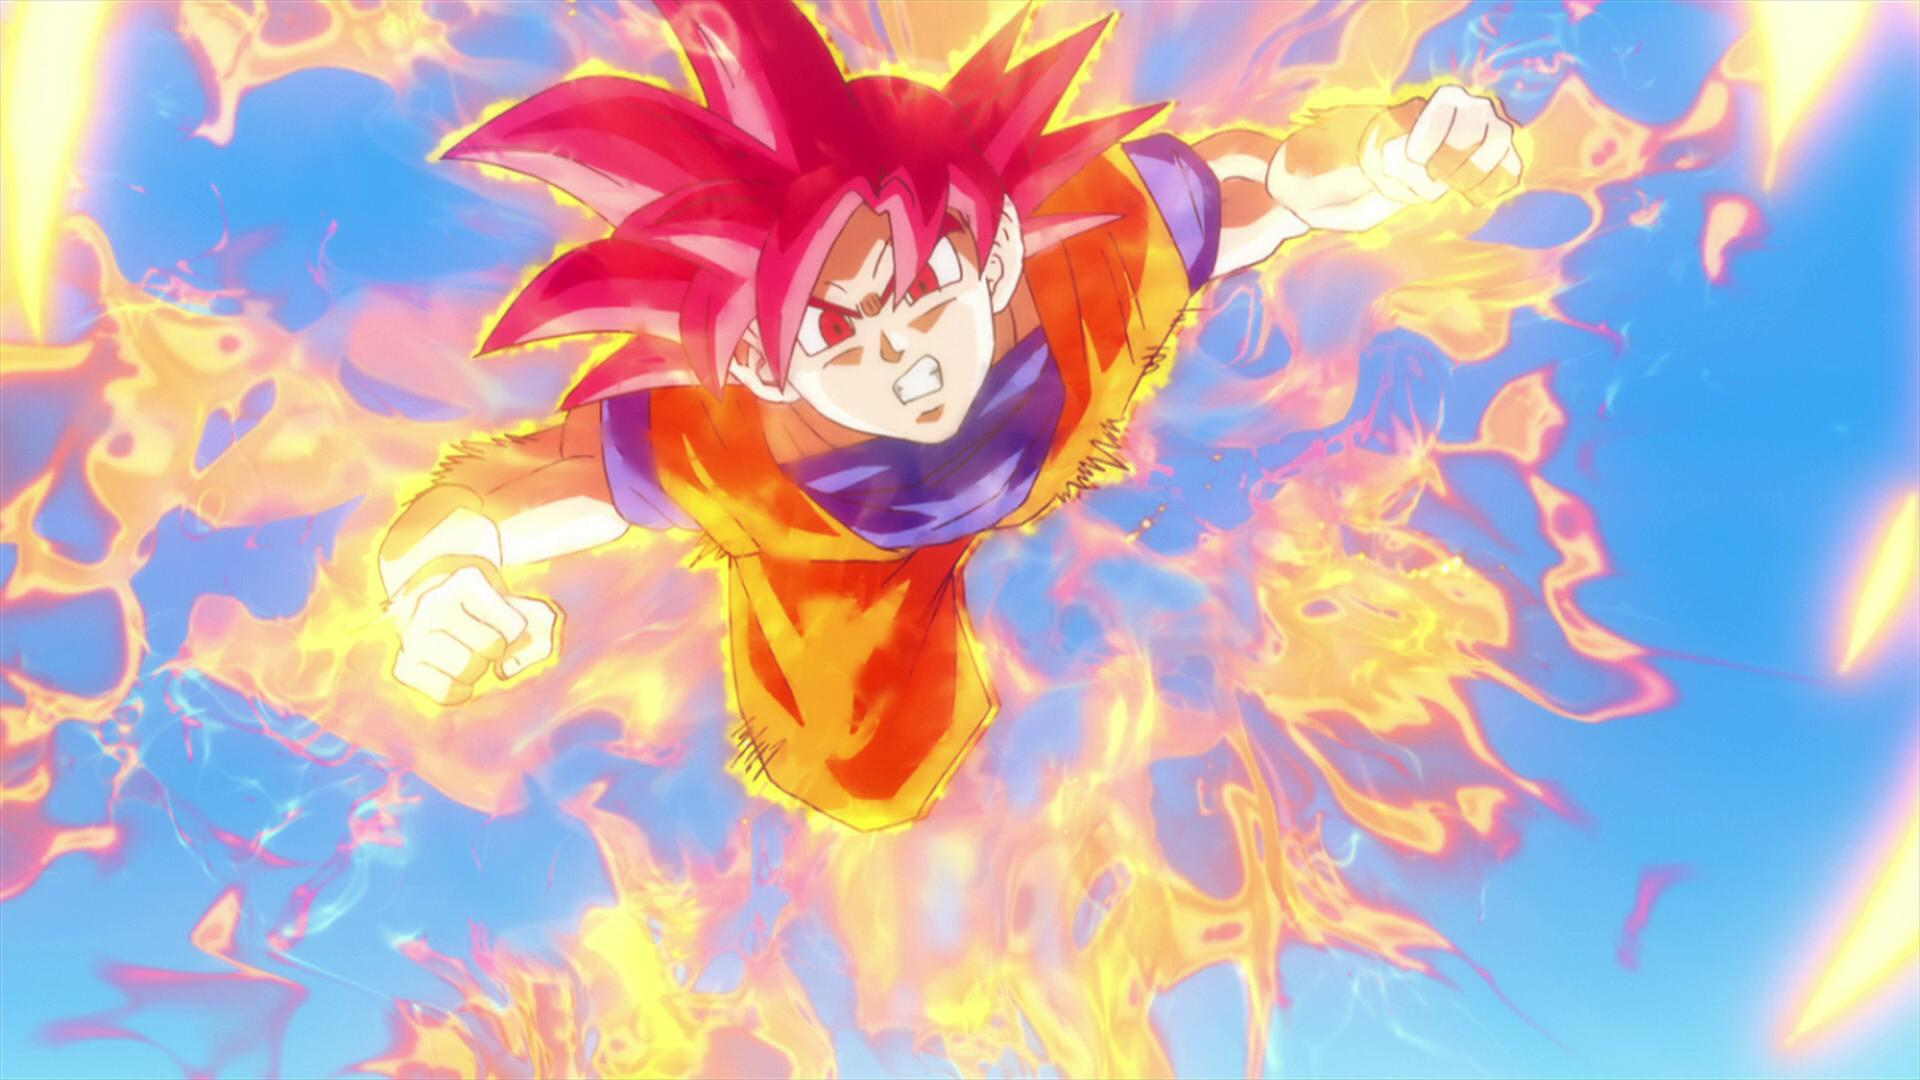 Download Super Saiyan God Goku Wallpaper Gallery